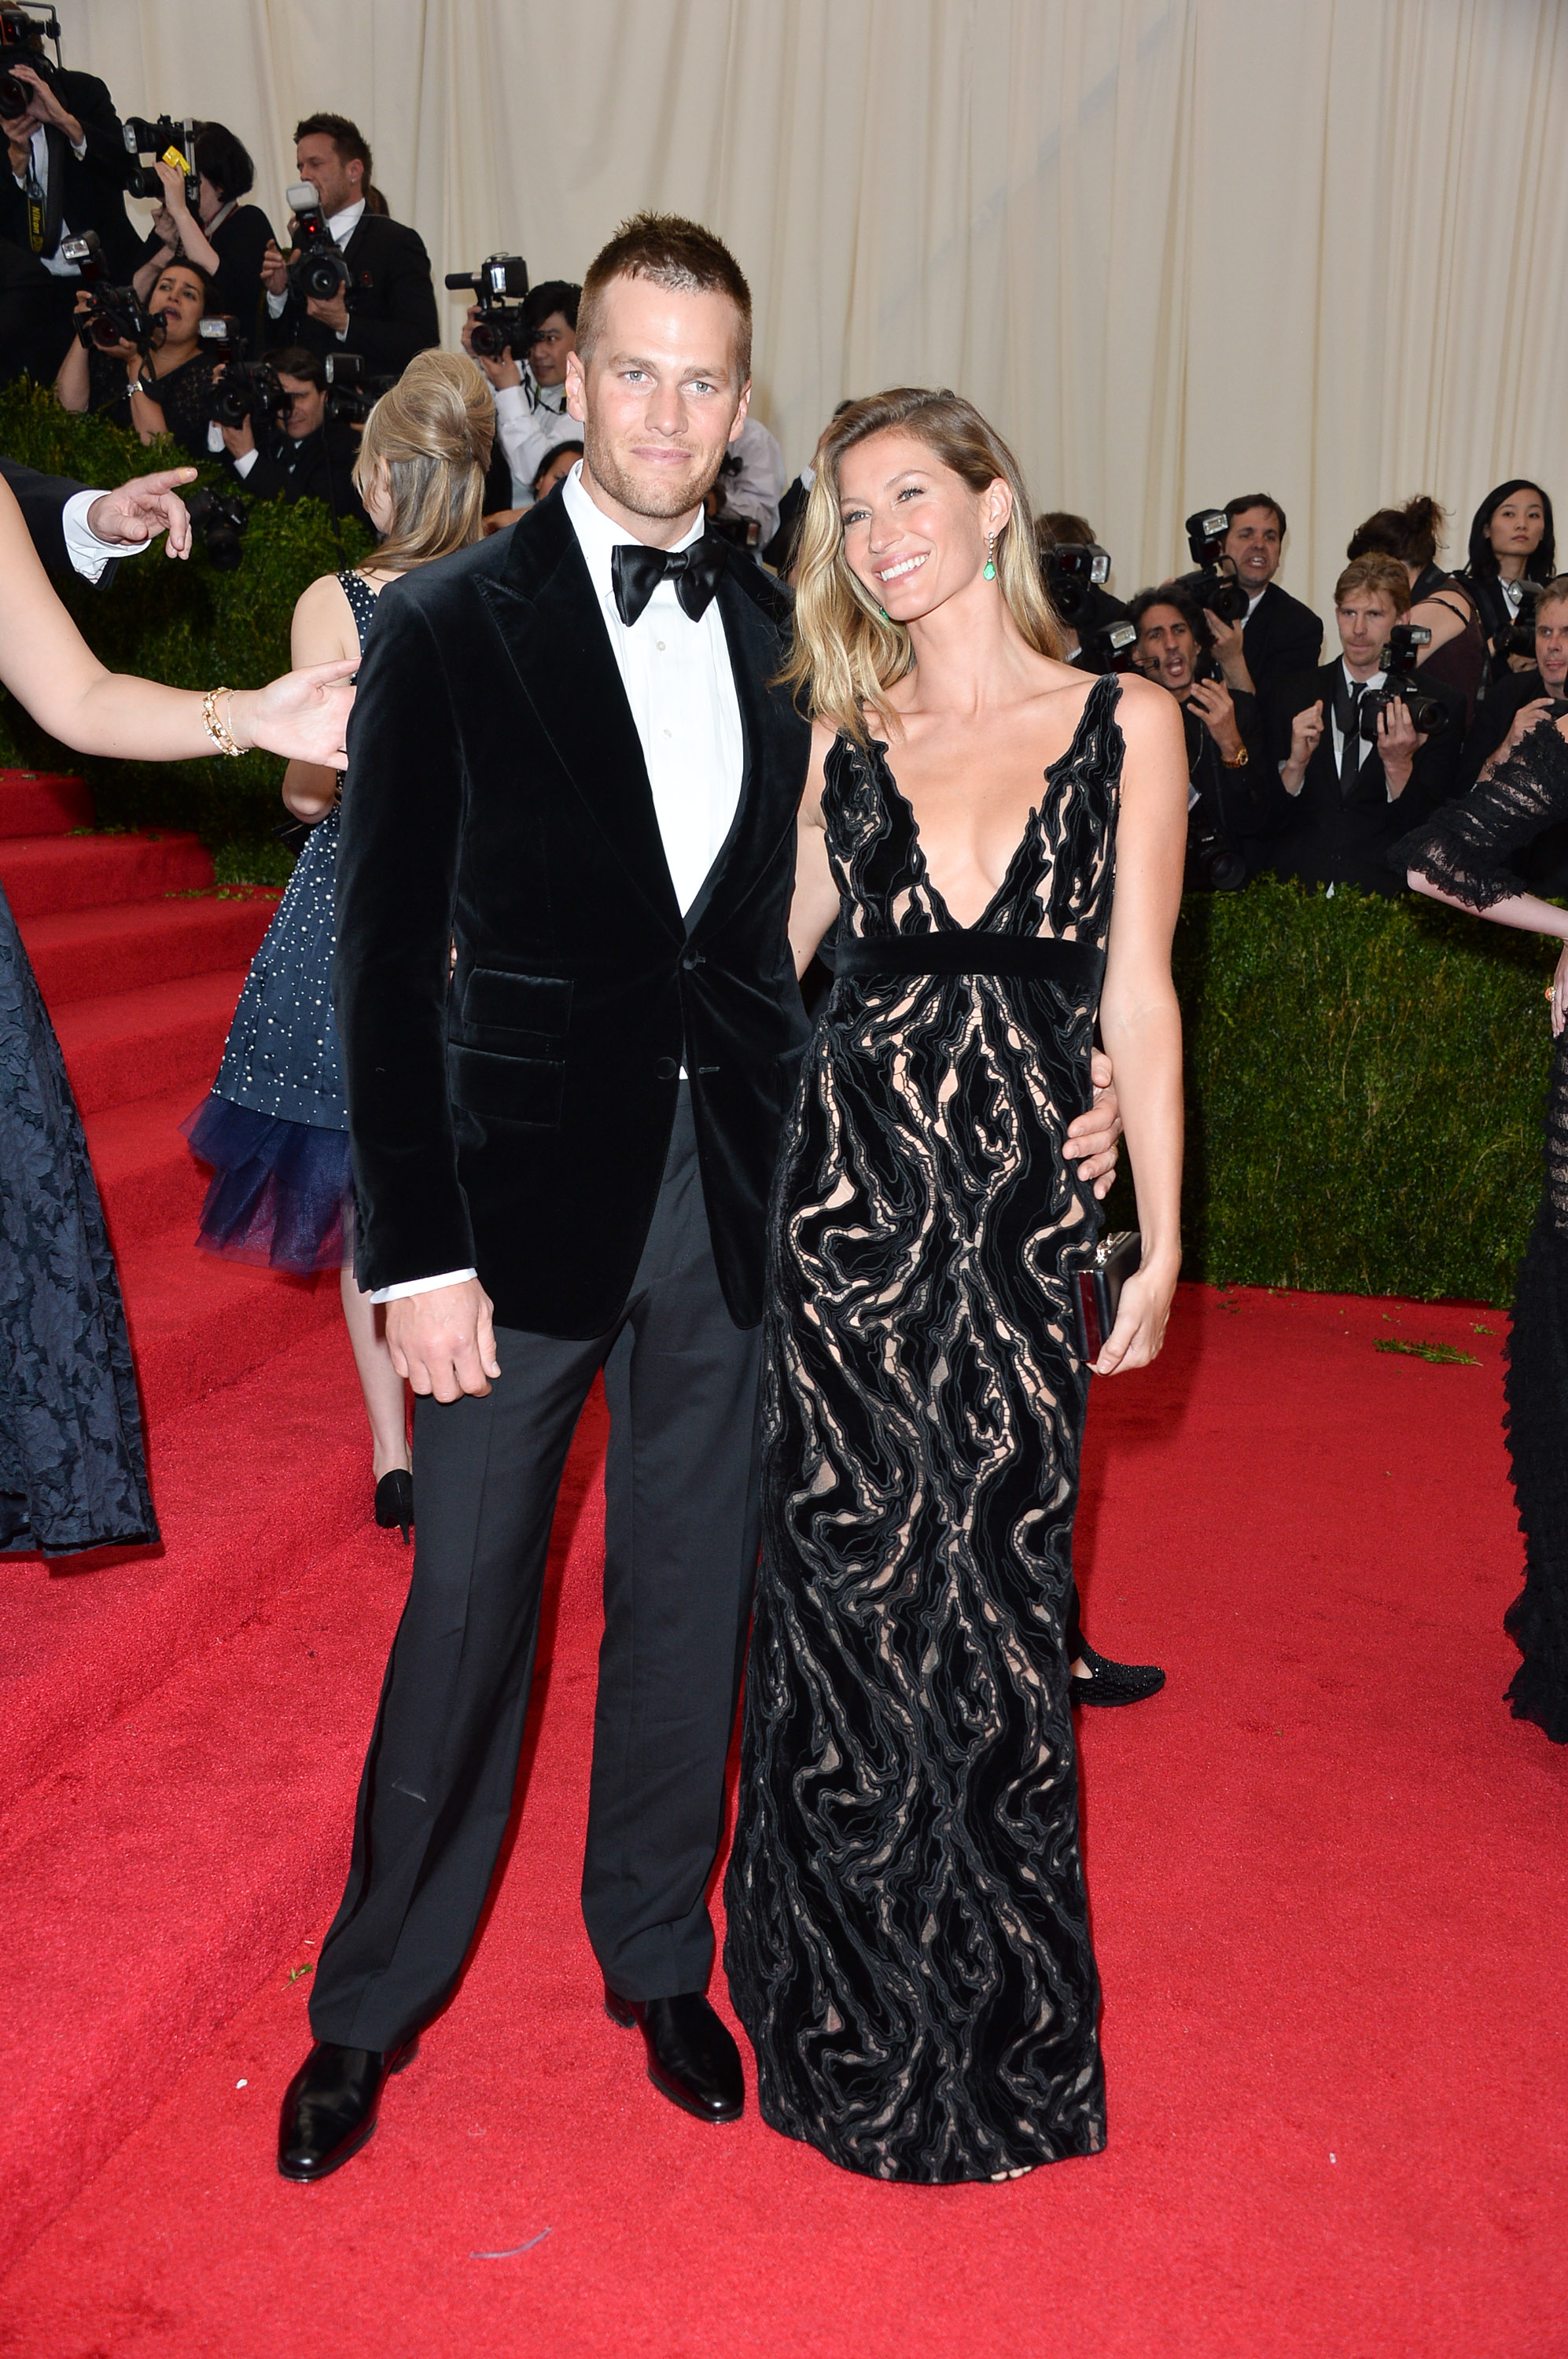 NEW YORK, NY - MAY 05: Tom Brady and Gisele Bundchen attend the  Charles James: Beyond Fashion  Costume Institute Gala at the Metropolitan Museum of Art on May 5, 2014 in New York City. (Photo by George Pimentel/WireImage)